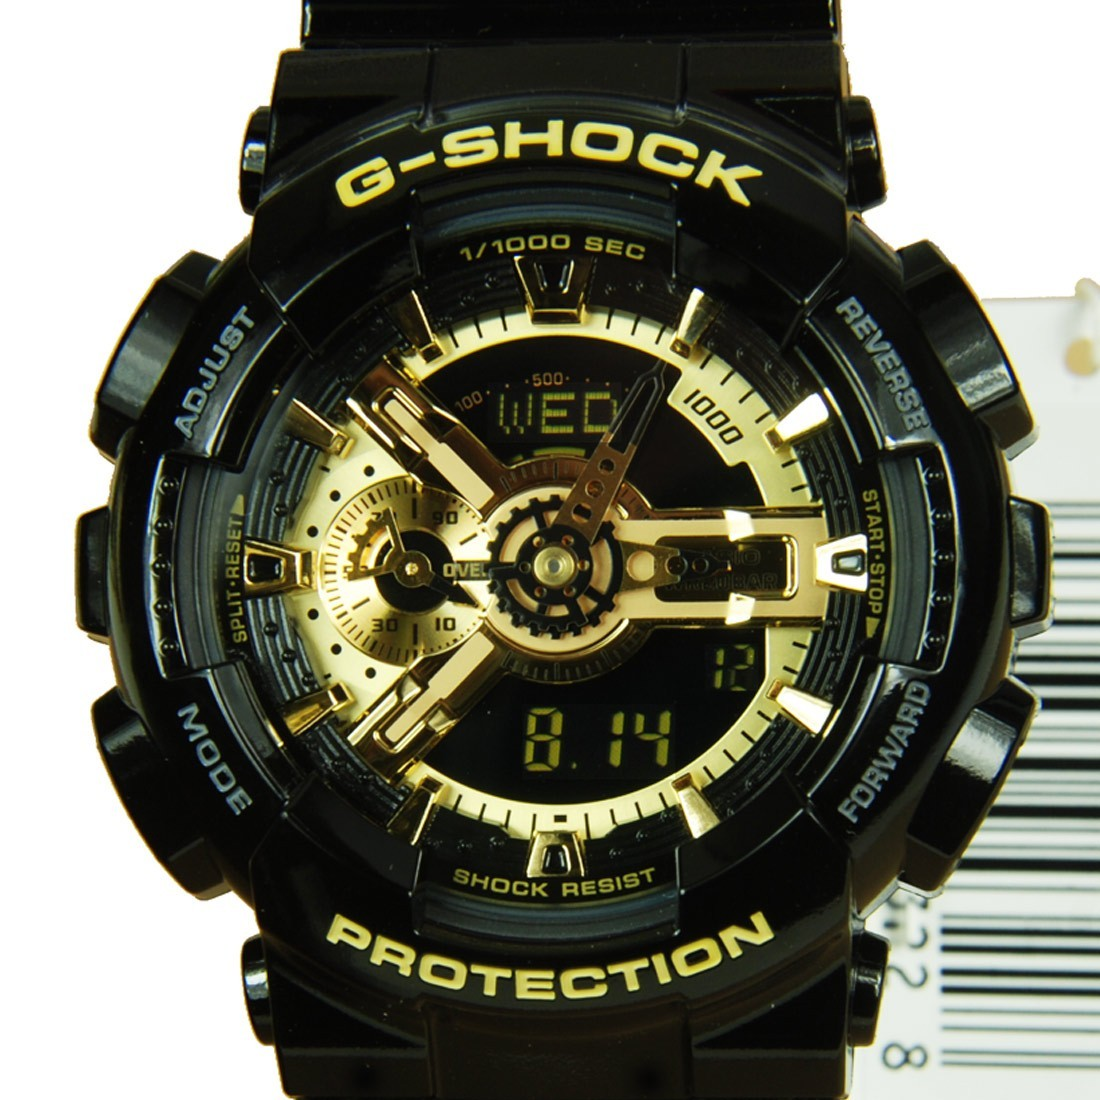 dong-ho-g-shock-12